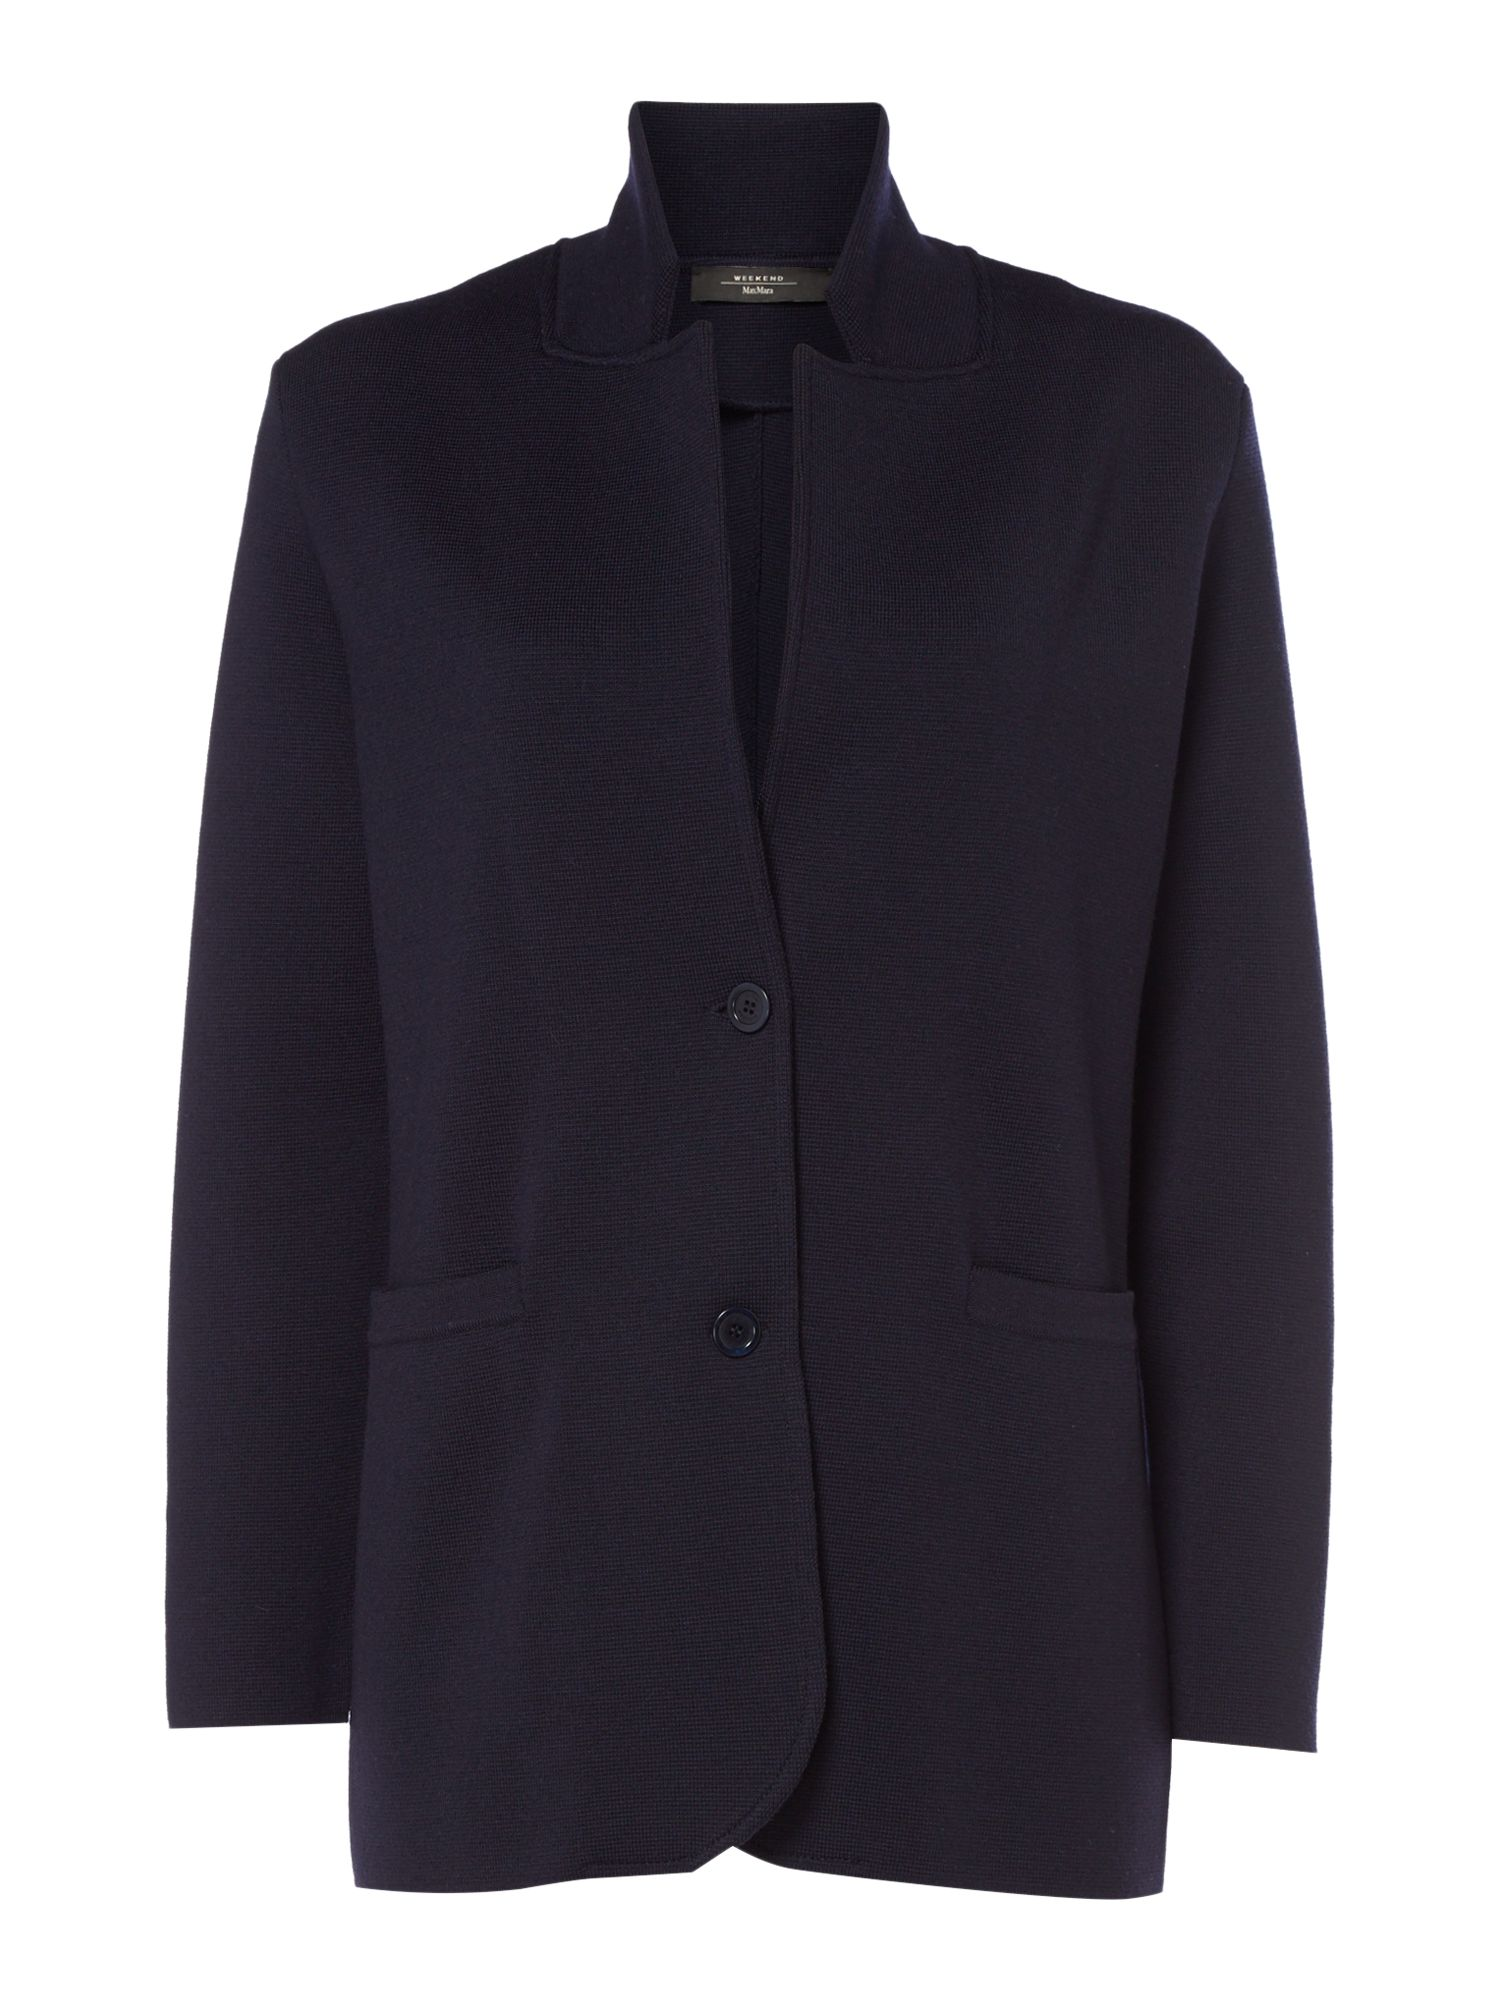 Max Mara Weekend Alacre Long Sleeve Knitted Blazer, Midnight Blue